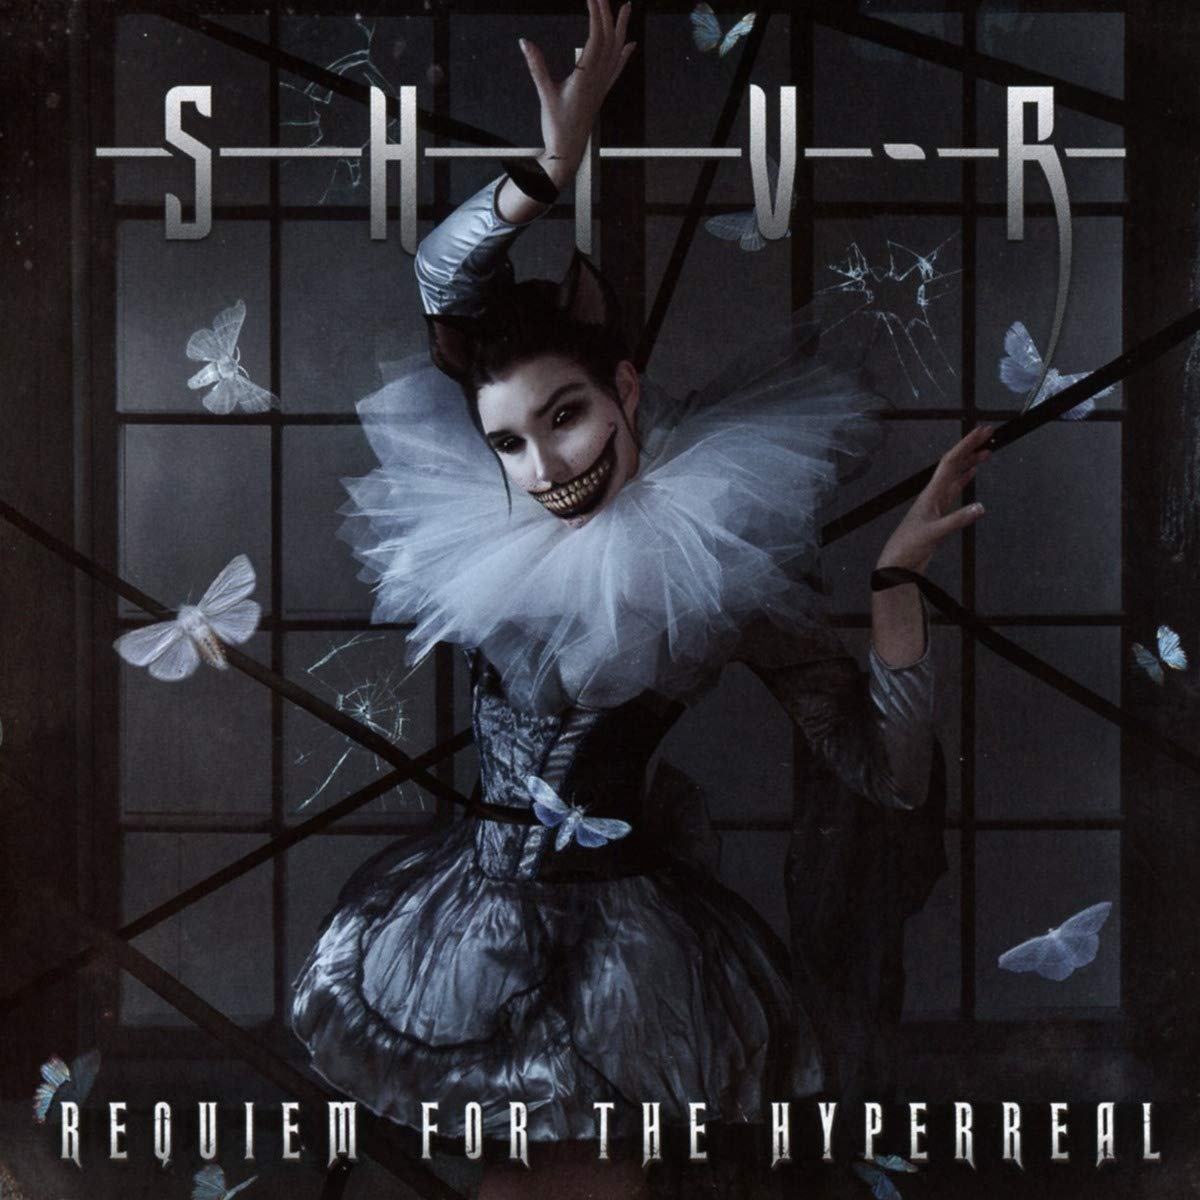 Shiv-R – Requiem For The Hyperreal (2018) [FLAC]